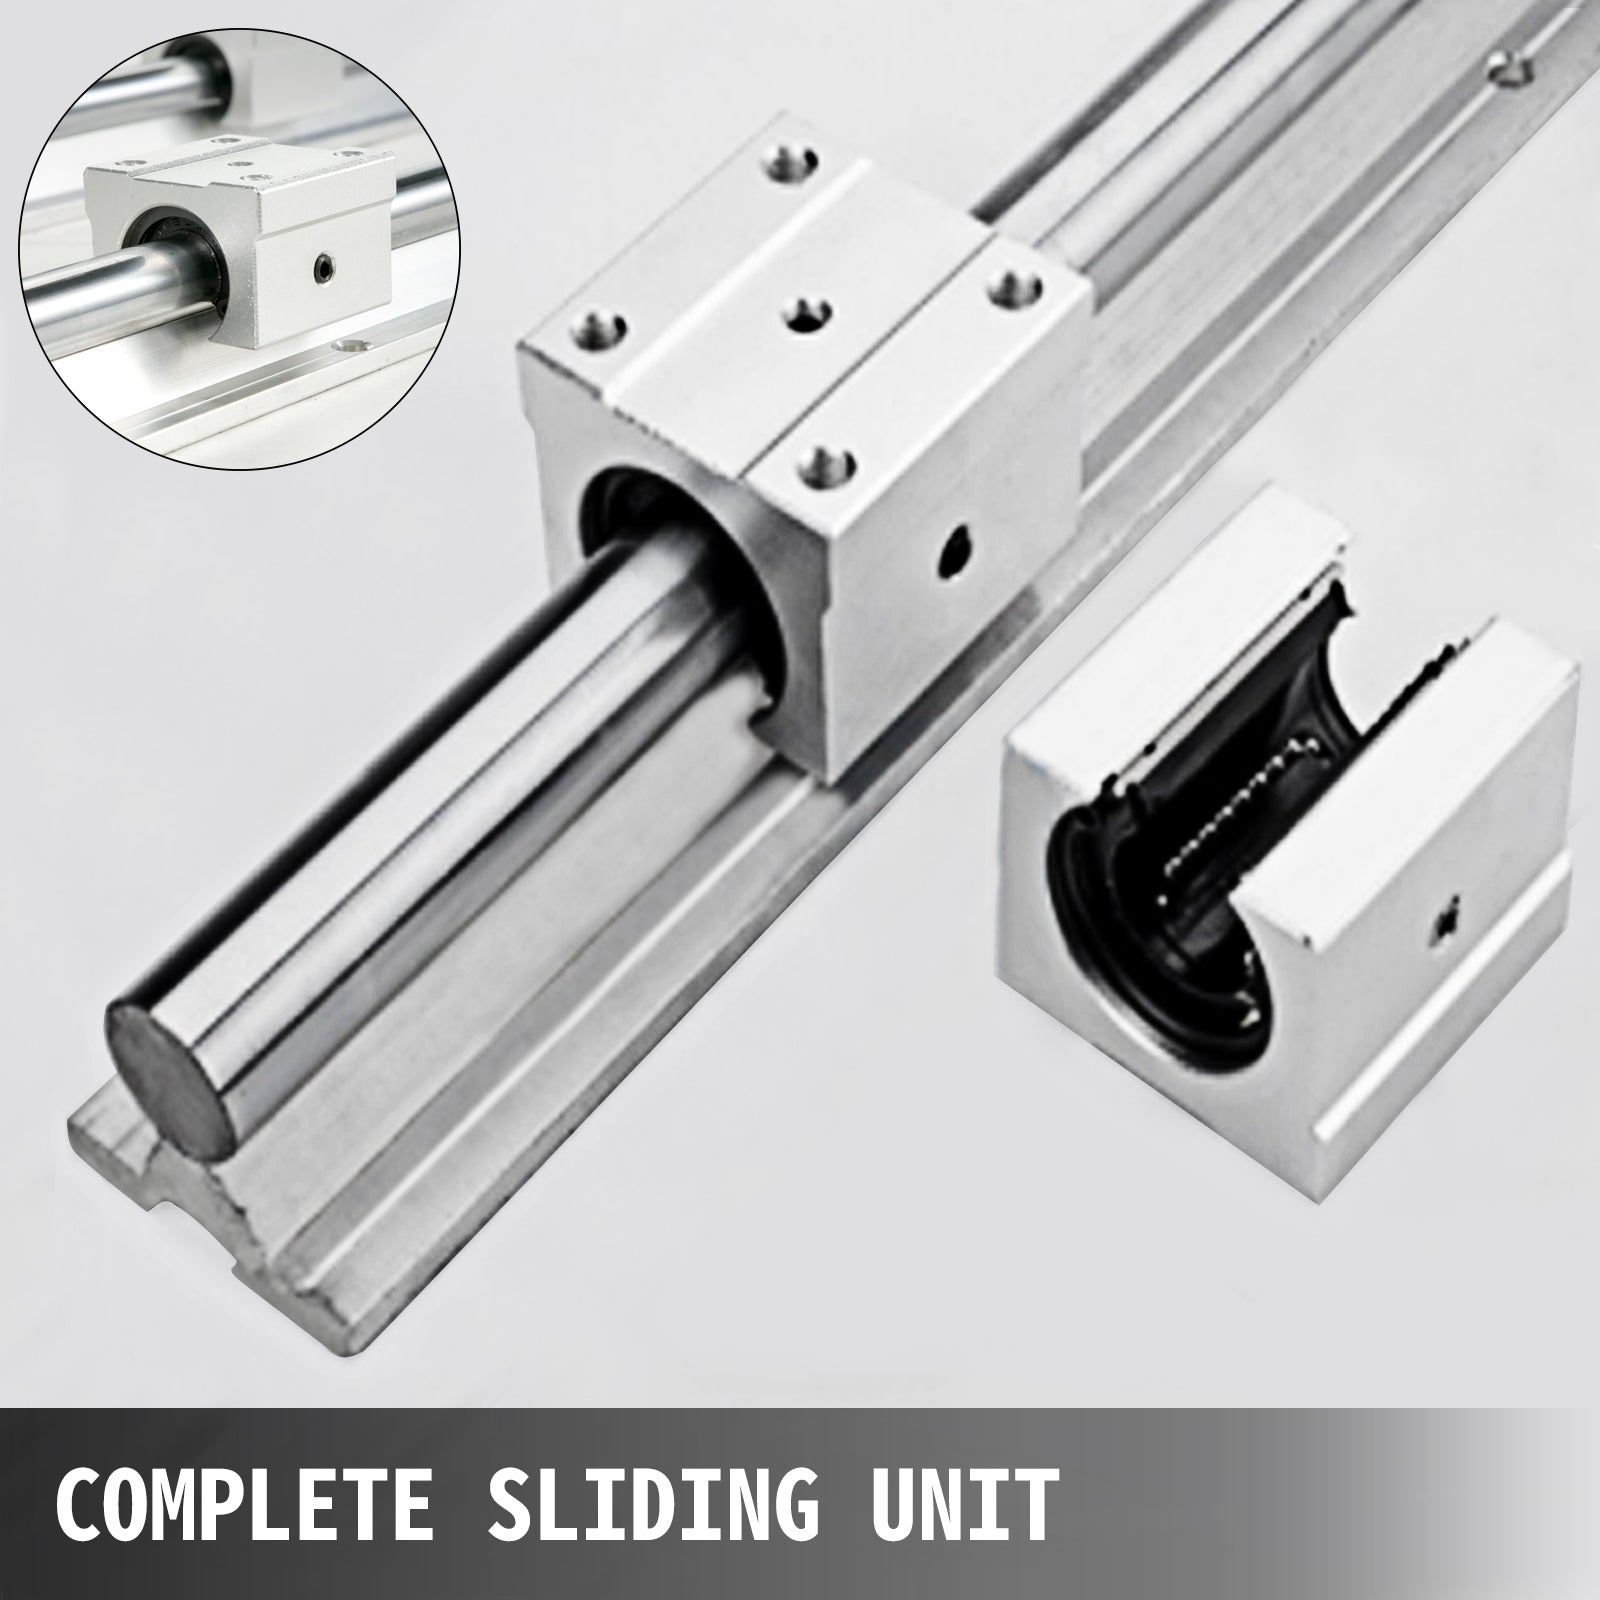 4pc SBR20UU Rail Block Kit Details about  /2pc Linear Rail Rod SBR20 200-1000mm Fully Supported